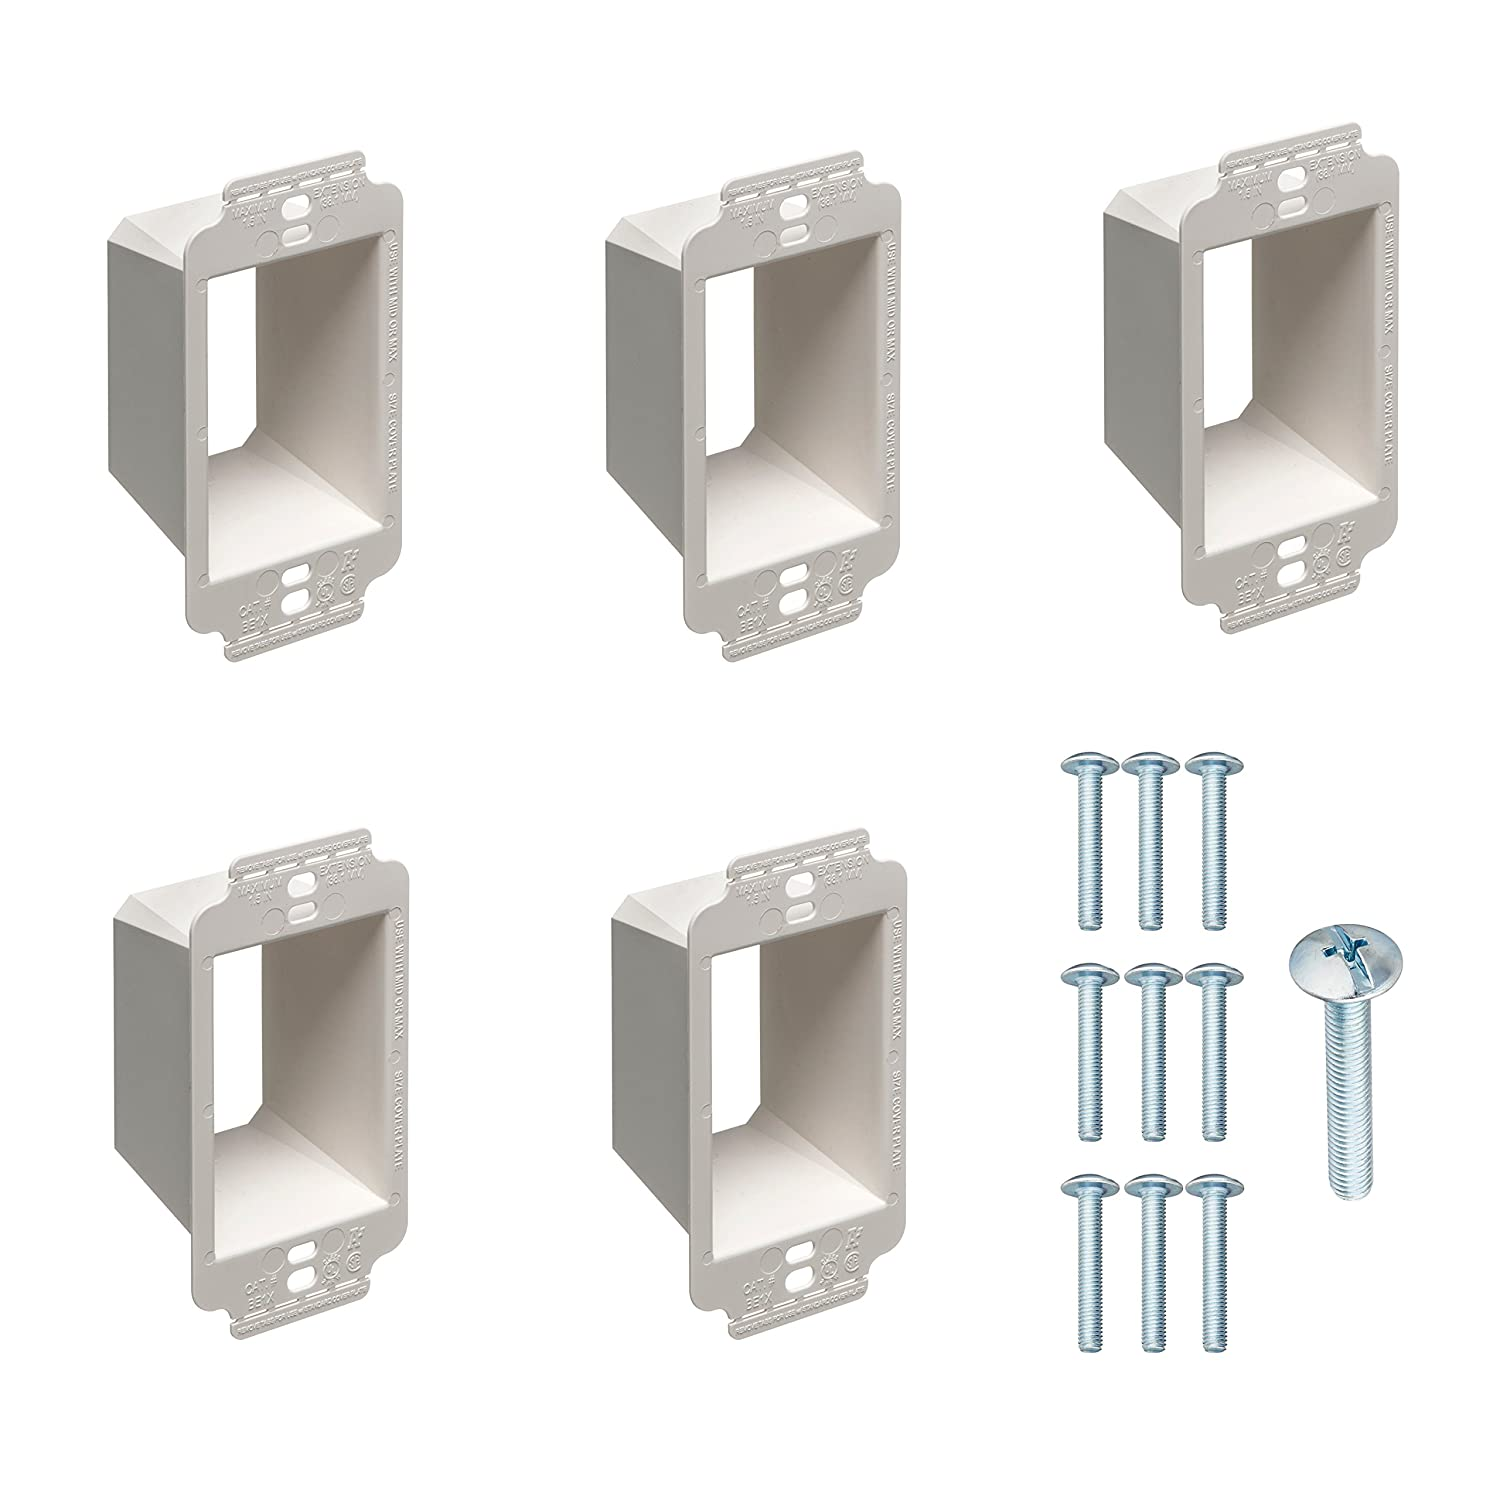 1 Gang Electrical Box Extender with Machine Screws Kit by DoodleYolk Inc. 5 Pack Junction Box Extension 6 32 Truss Head screws. Extra Large Arlington BE1X ring better secures wiring devices